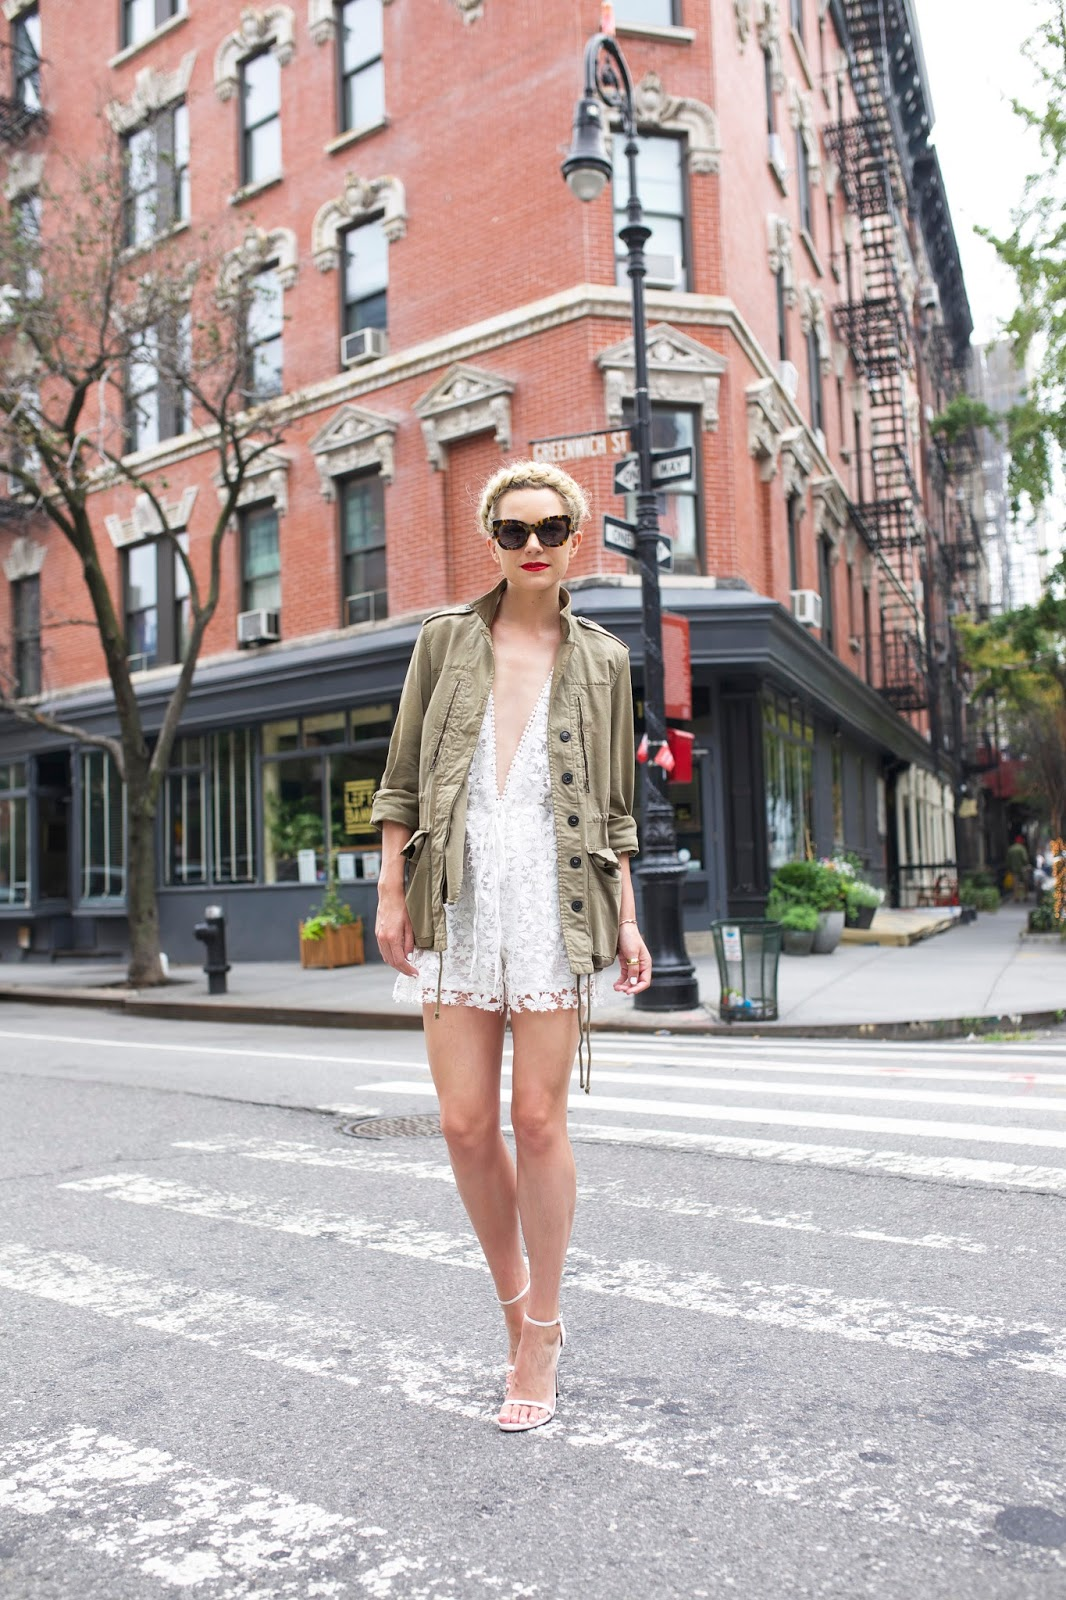 10428a4b015 Romper (also love this one). Shoes  Stuart Weitzman (similar on sale).  Sunglasses  Karen Walker. Jacket  Zara (old